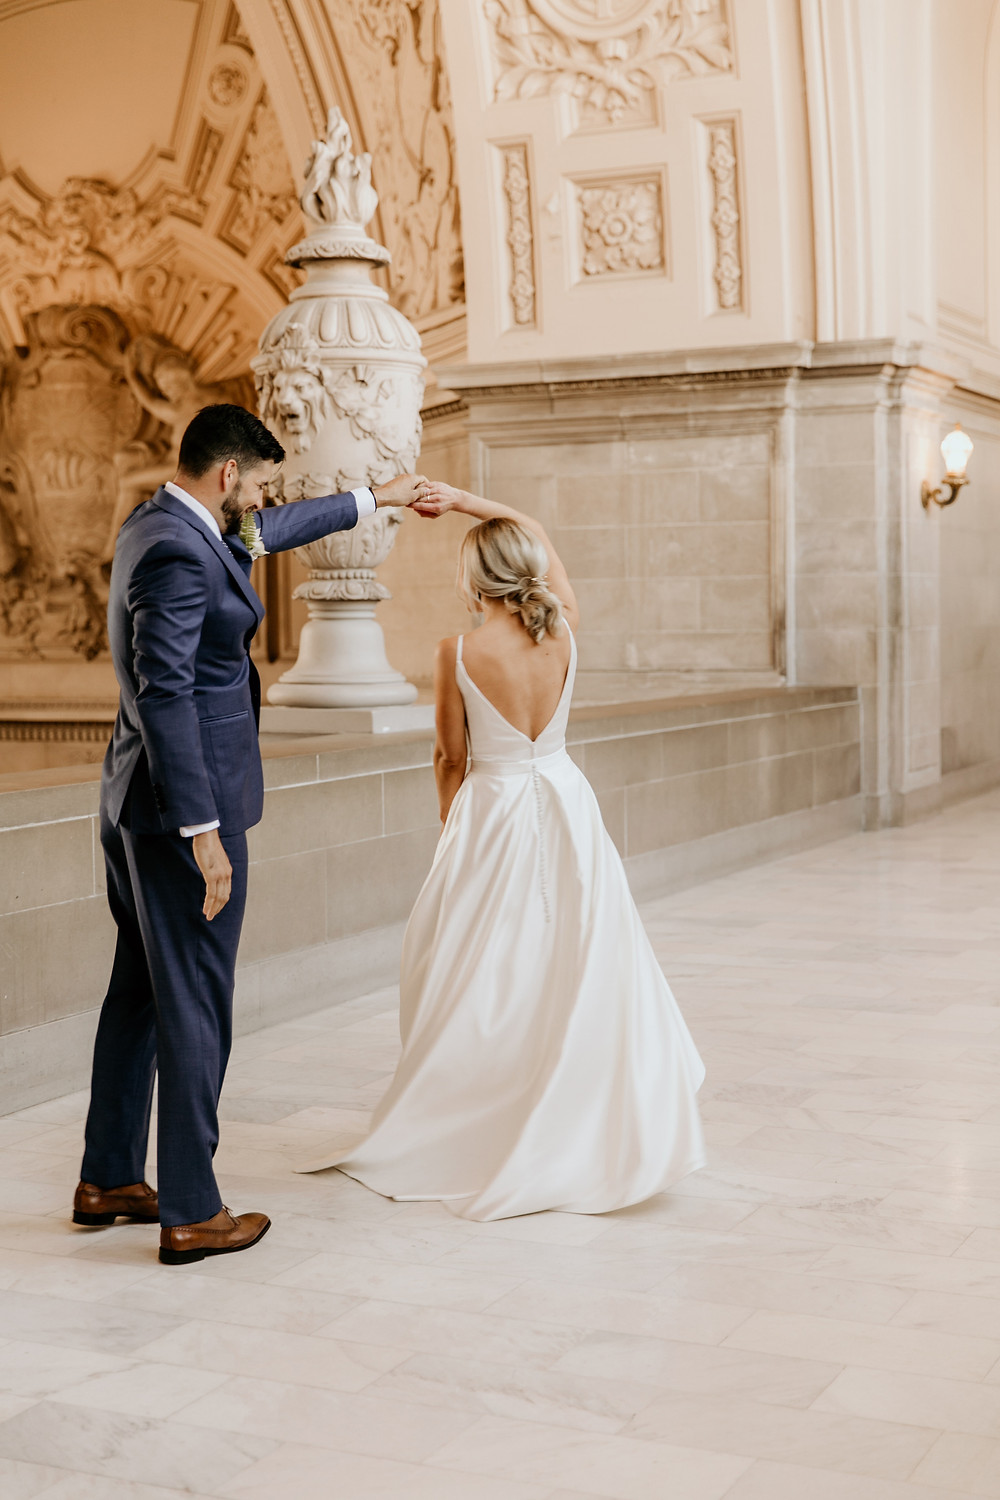 San Francisco city hall wedding, planned by destination wedding planner Liza Bagerman at Studio DBI. This modern and contemporary chic city wedding was full of custom details.